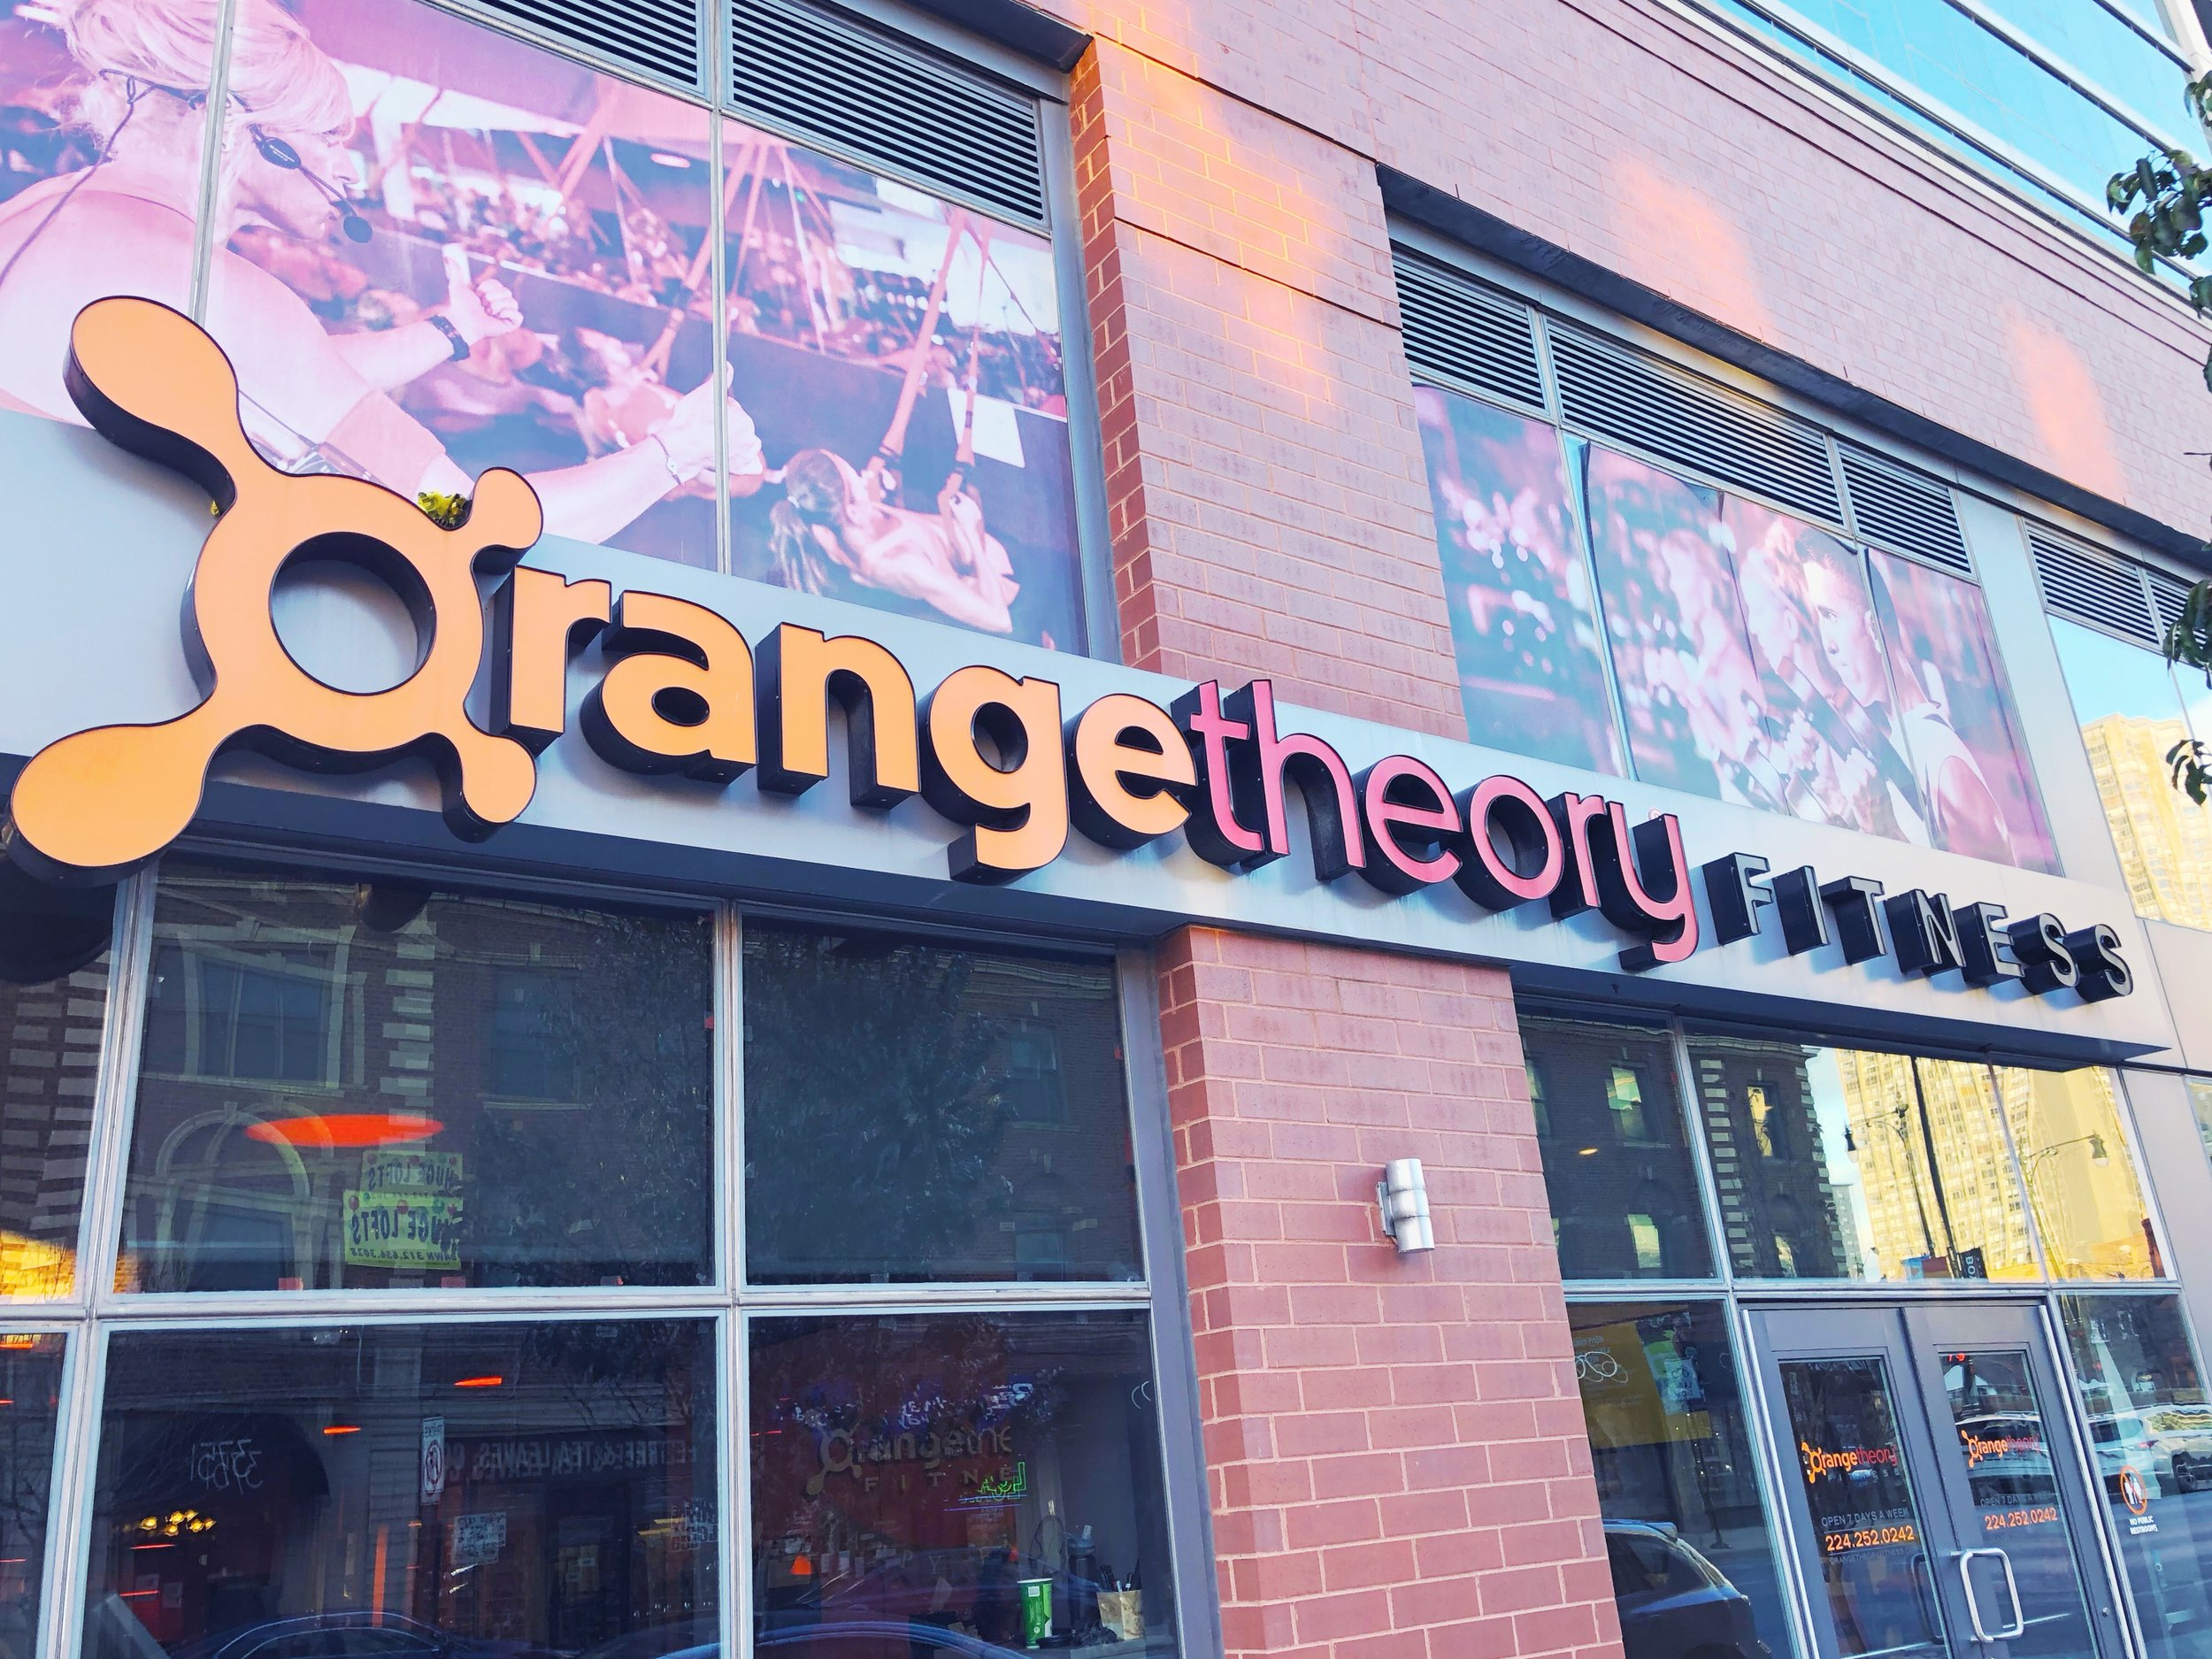 Orangetheory Chicago HIIT and interval studio.